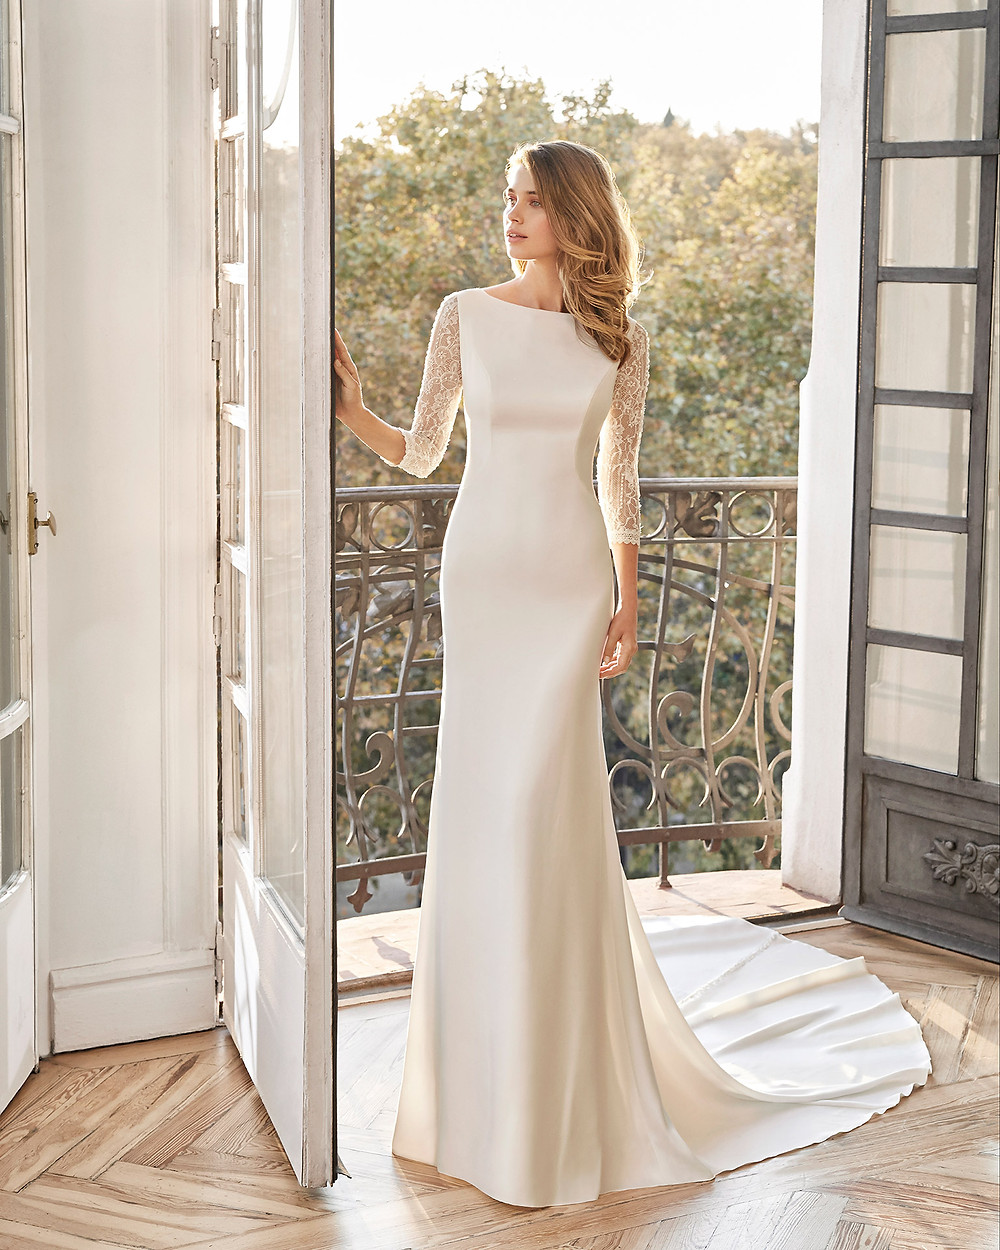 An Aire Barcelona 2020 silk mermaid fit and flare wedding dress with long lace illusion sleeves